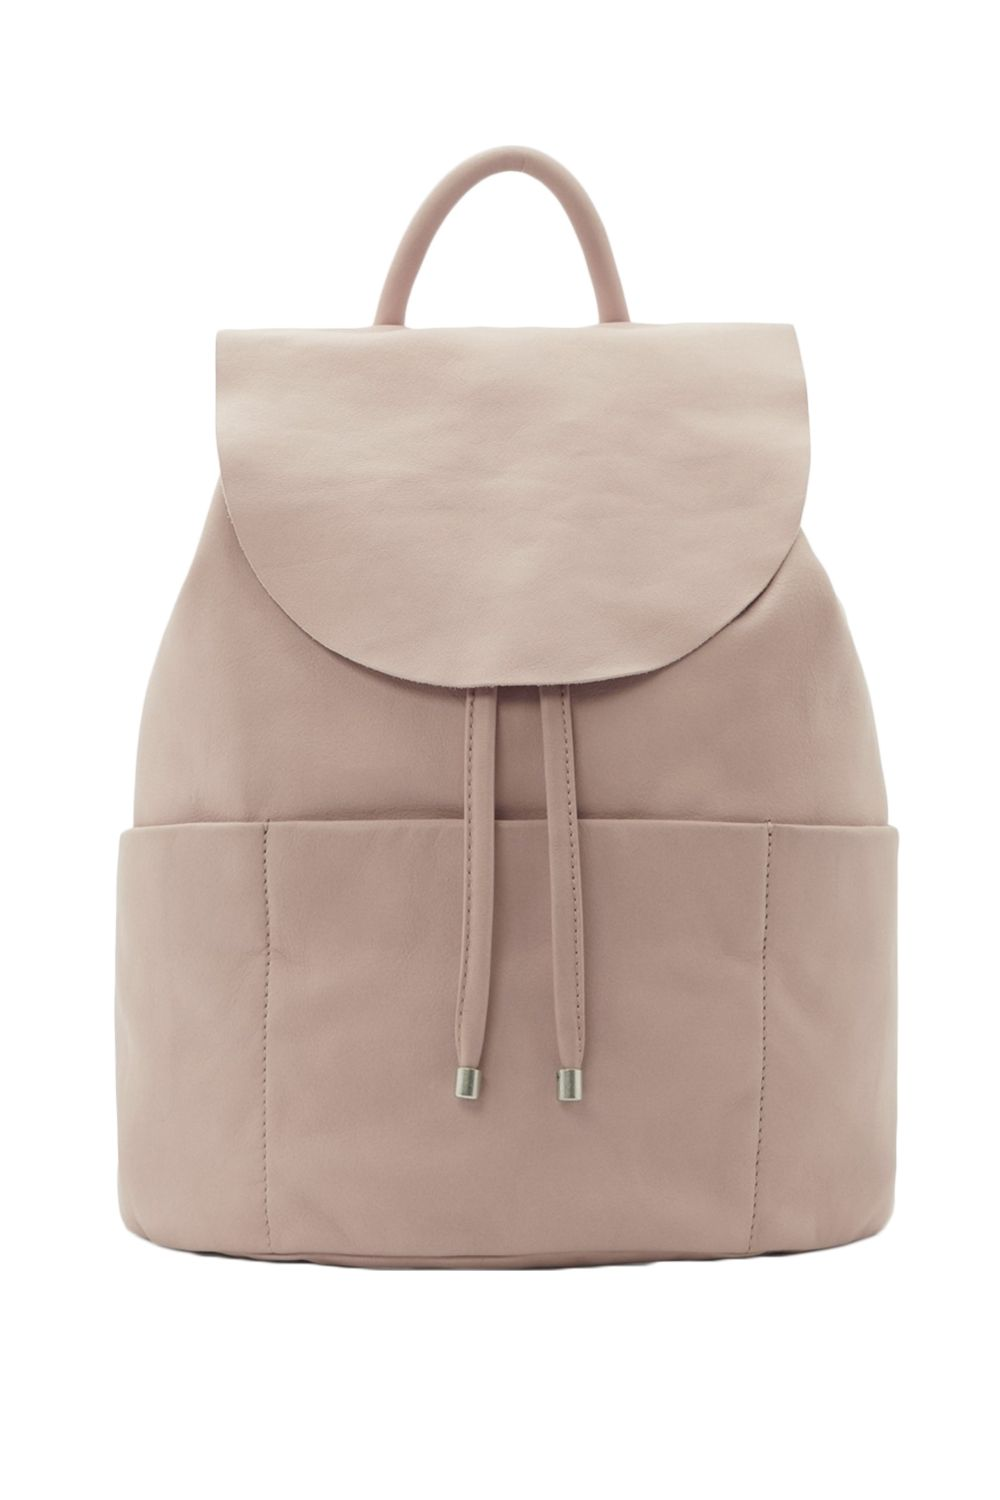 "<p>Subtle, understated, elegant—who'd have ever thought a backpack could embody all those sartorial ideals? This unstructured pale pink leather bag keeps it real with on-trend raw cut edges, a drawstring closure, and an otherwise minimalist silhouette. Wear it with jeans and a tee—the bag adds casual polish—or with a kicky dress for dining <em data-redactor-tag=""em"">al fresco</em>, as you do. <em data-redactor-tag=""em"">$190, </em><a href=""http://www.cosstores.com/us/Women/Bags_Purses/Unstructured_leather_backpack/10672447-20430739.1#20430740"" target=""_blank""><em data-redactor-tag=""em"">cosstores.com</em></a></p>"